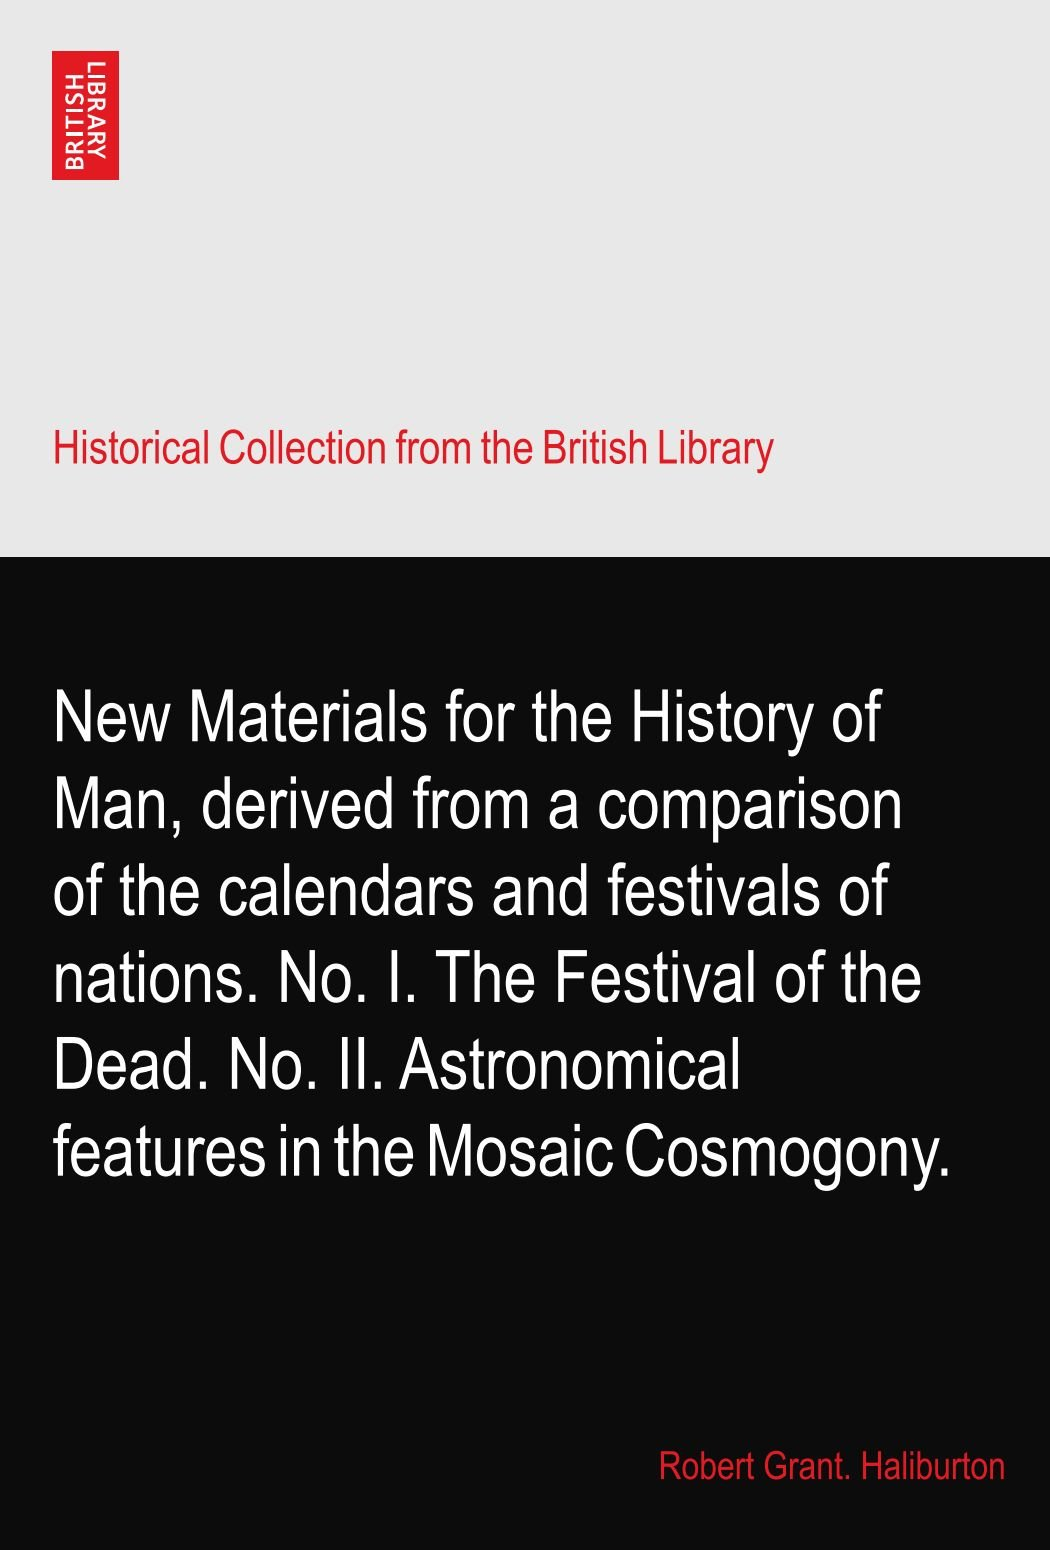 New Materials for the History of Man, derived from a comparison of the calendars and festivals of nations. No. I. The Festival of the Dead. No. II. Astronomical features in the Mosaic Cosmogony. pdf epub